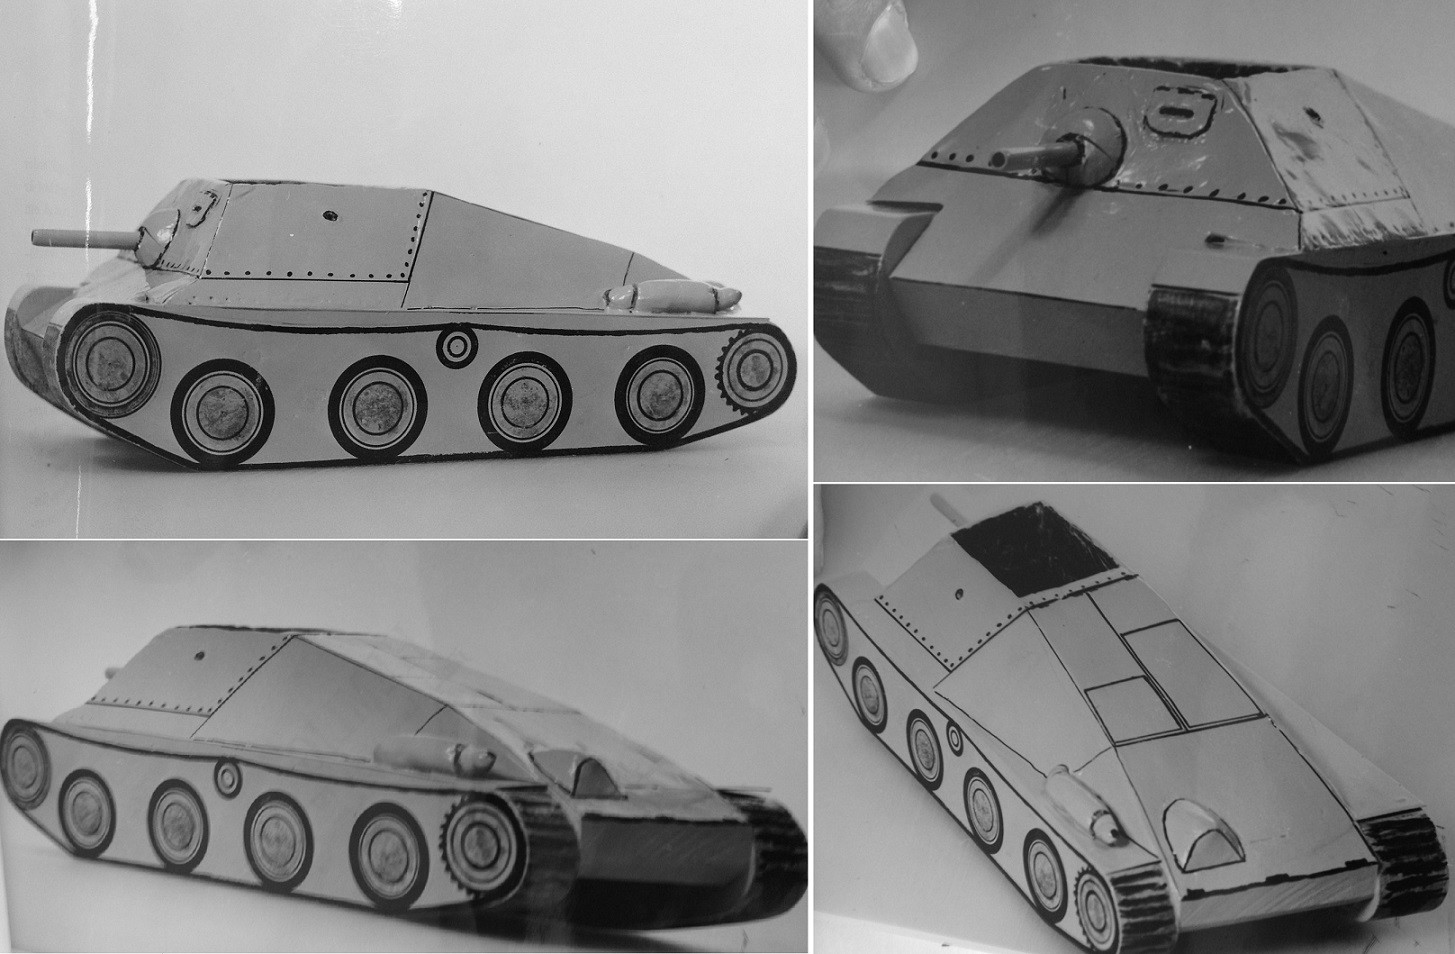 Scale_model_of_tankett_m49.jpg